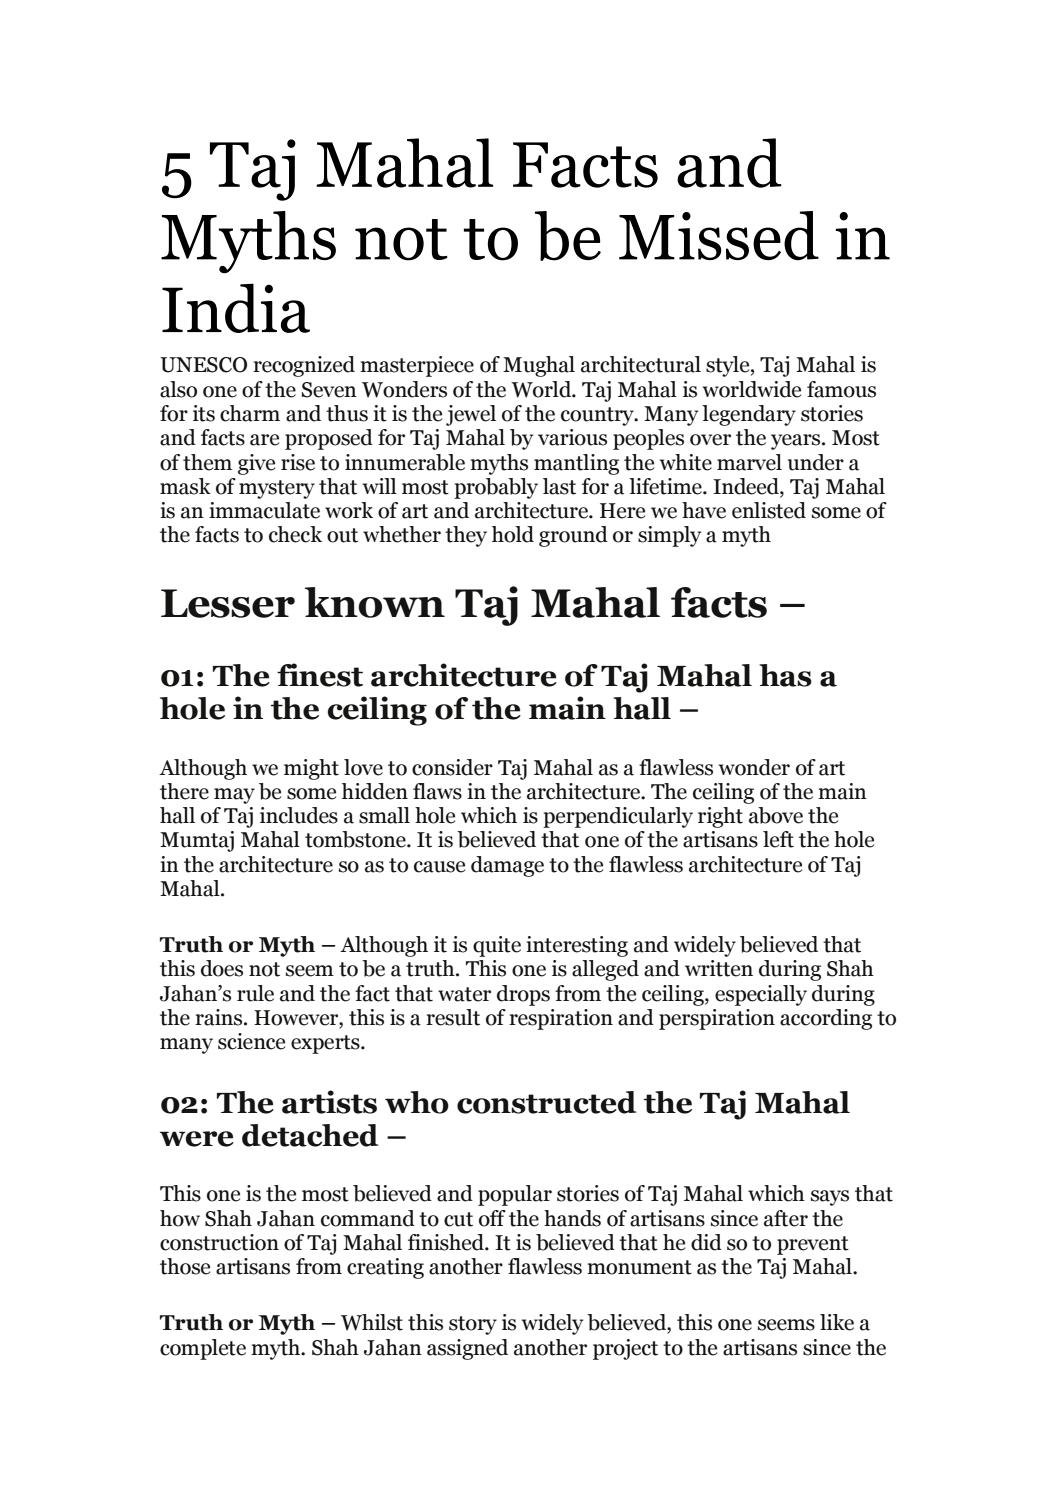 5 Taj Mahal Facts And Myths Not To Be Missed In India By Top Indian Holidays Issuu